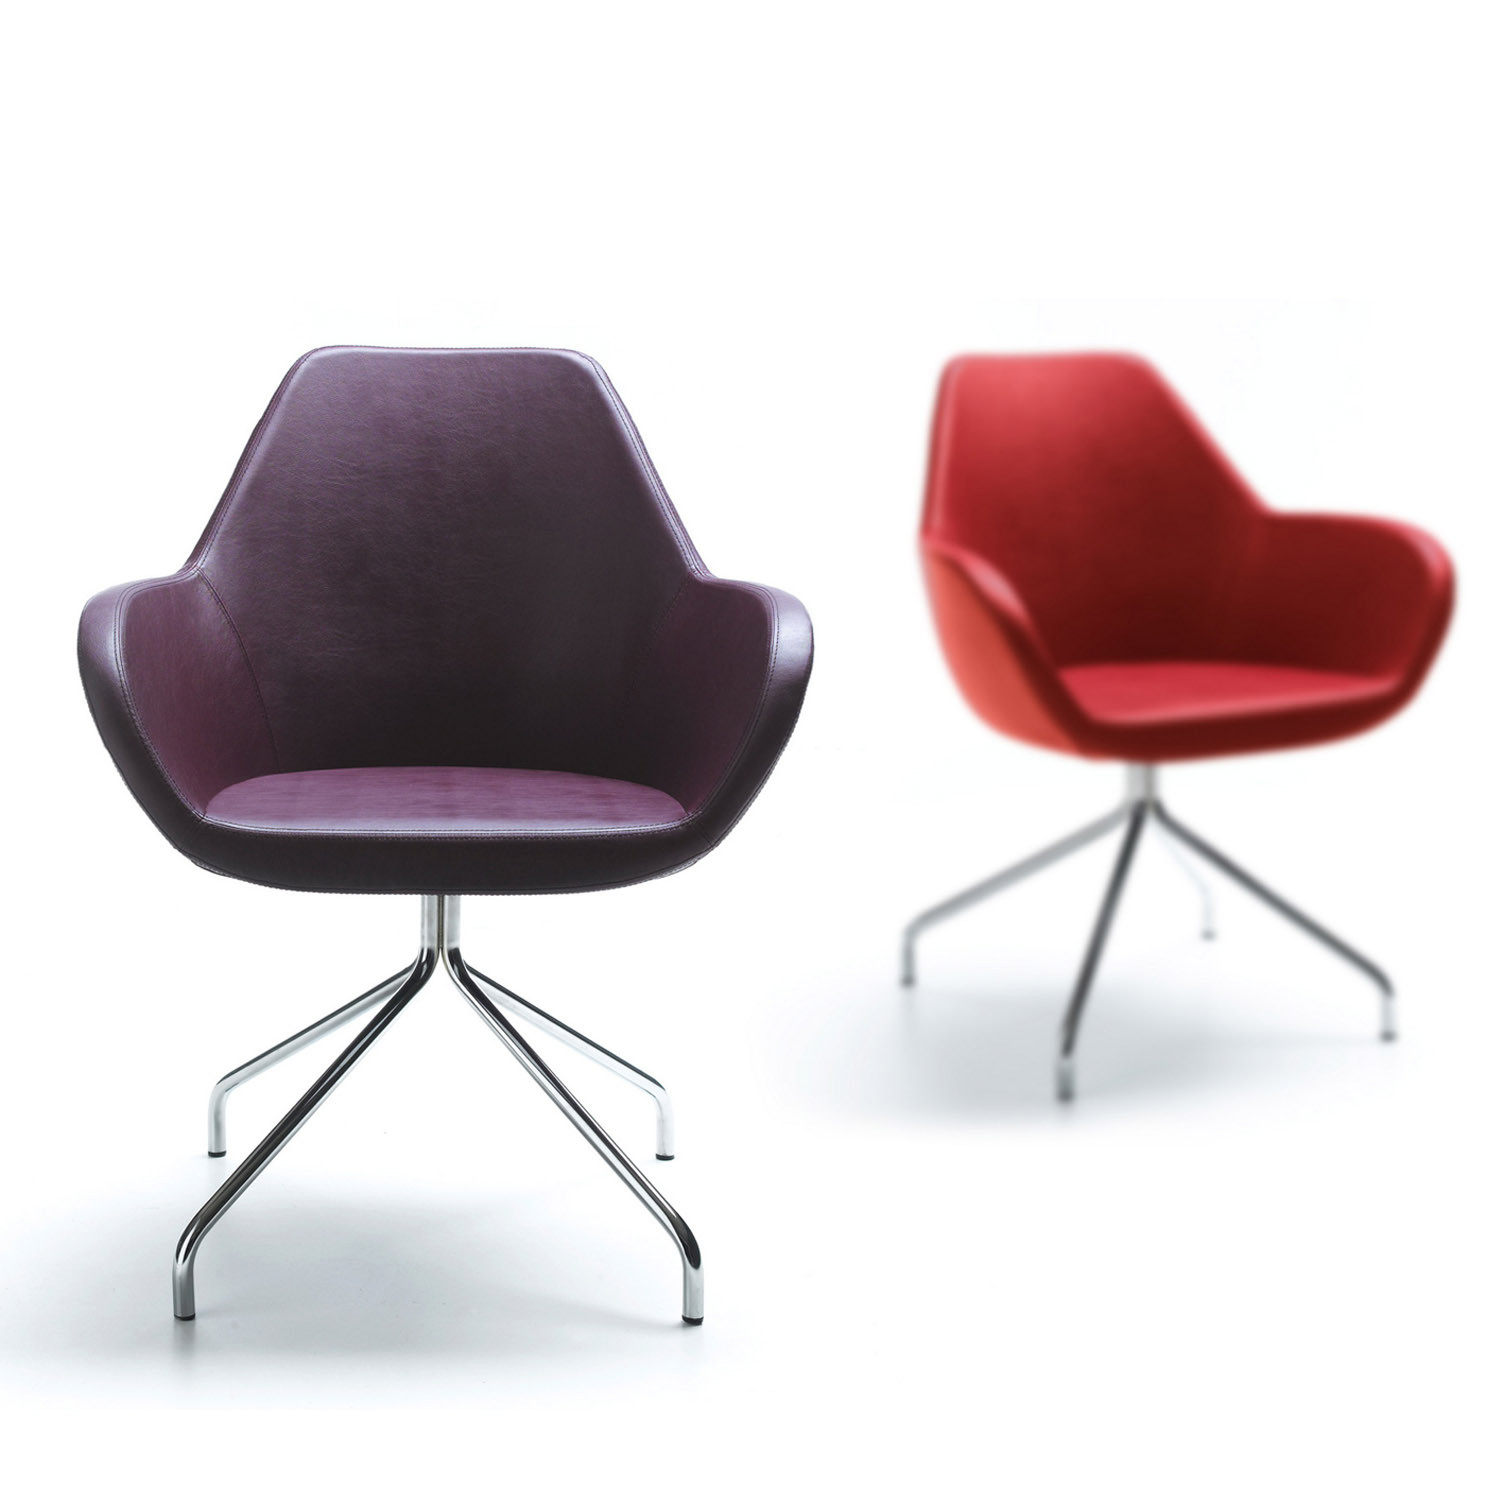 Spacestor Reflex Chairs